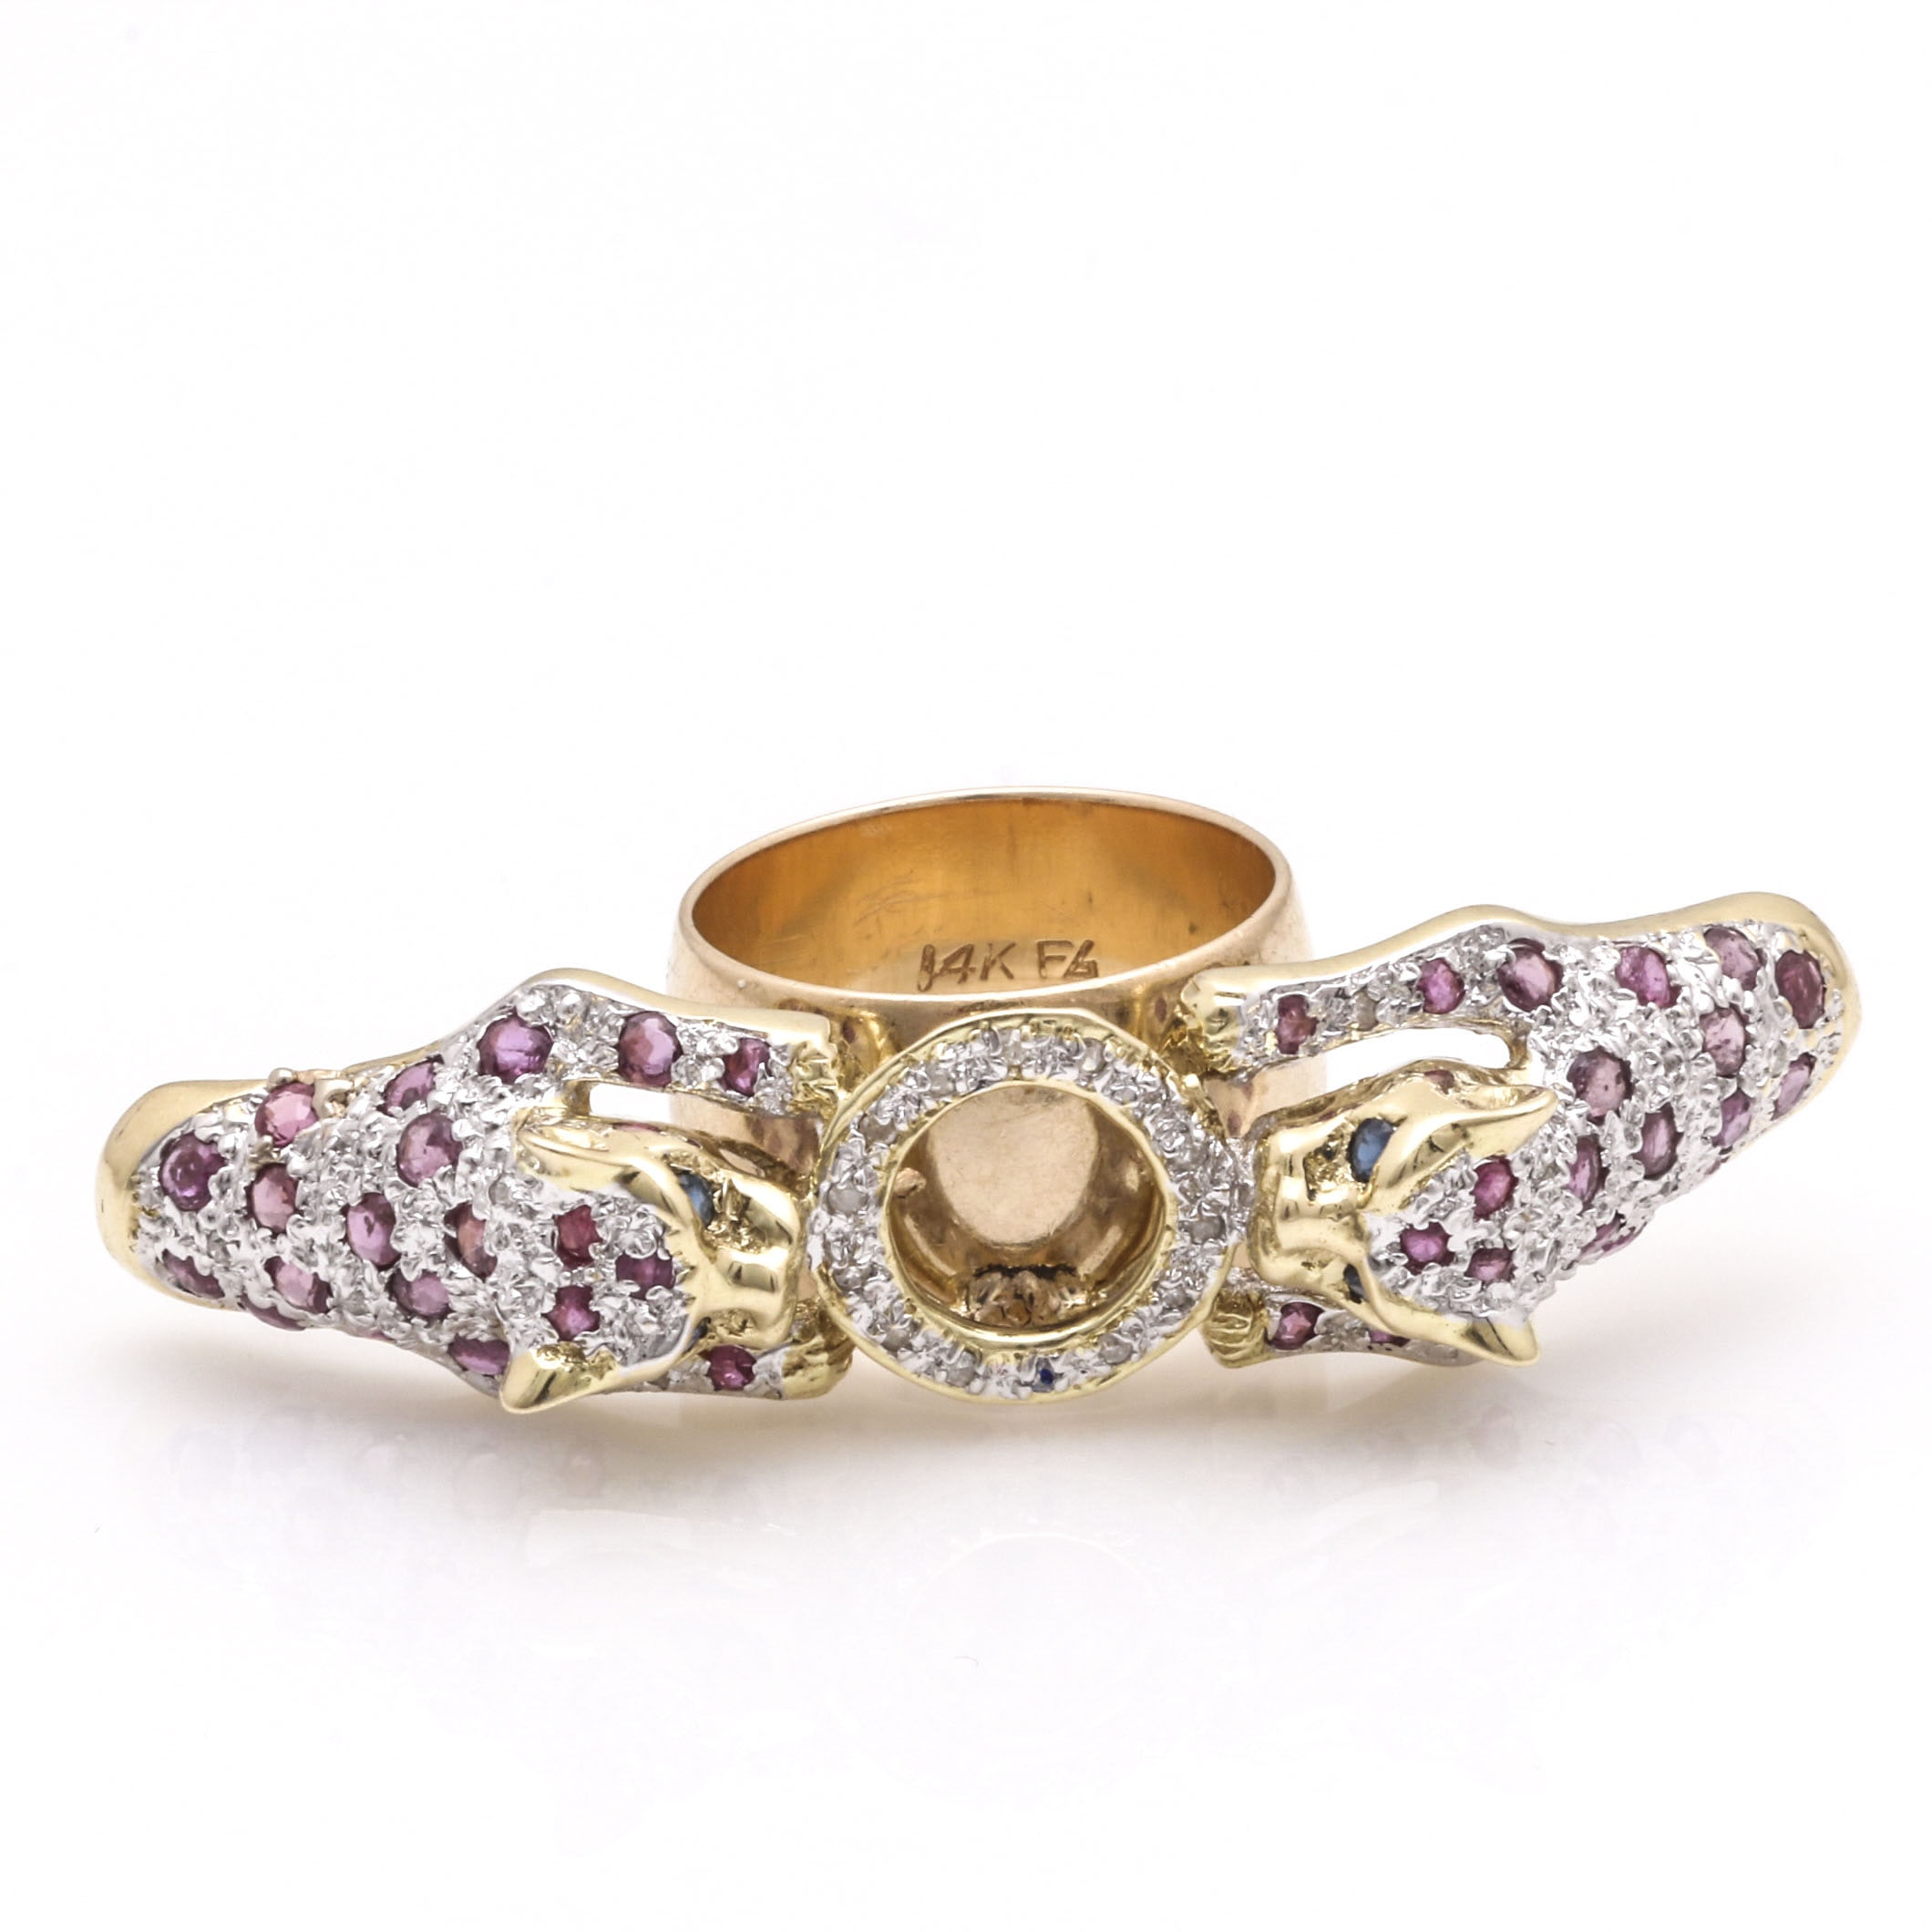 14K Yellow Gold Diamond, Ruby, and Sapphire Leopard Ring